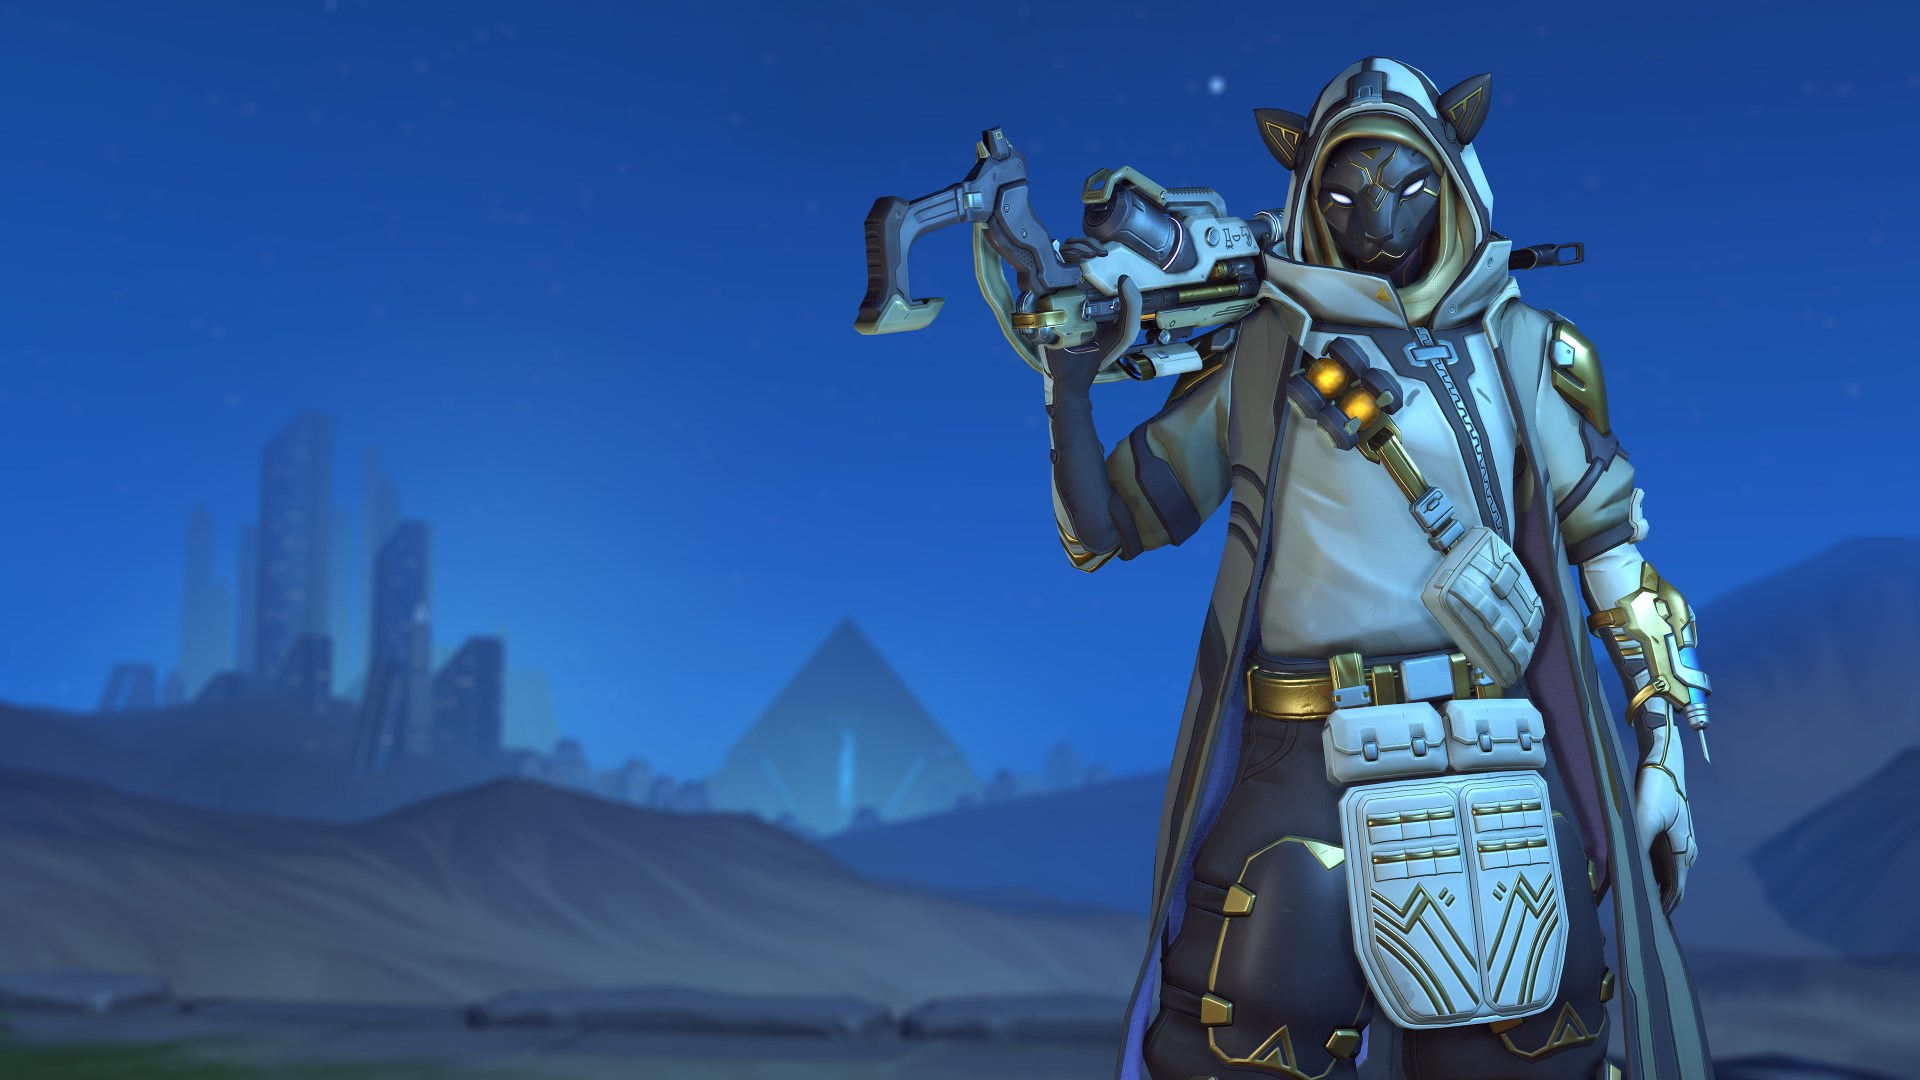 Overwatch's Anniversary event starts next week, brings back old skins and brawls | PC Gamer